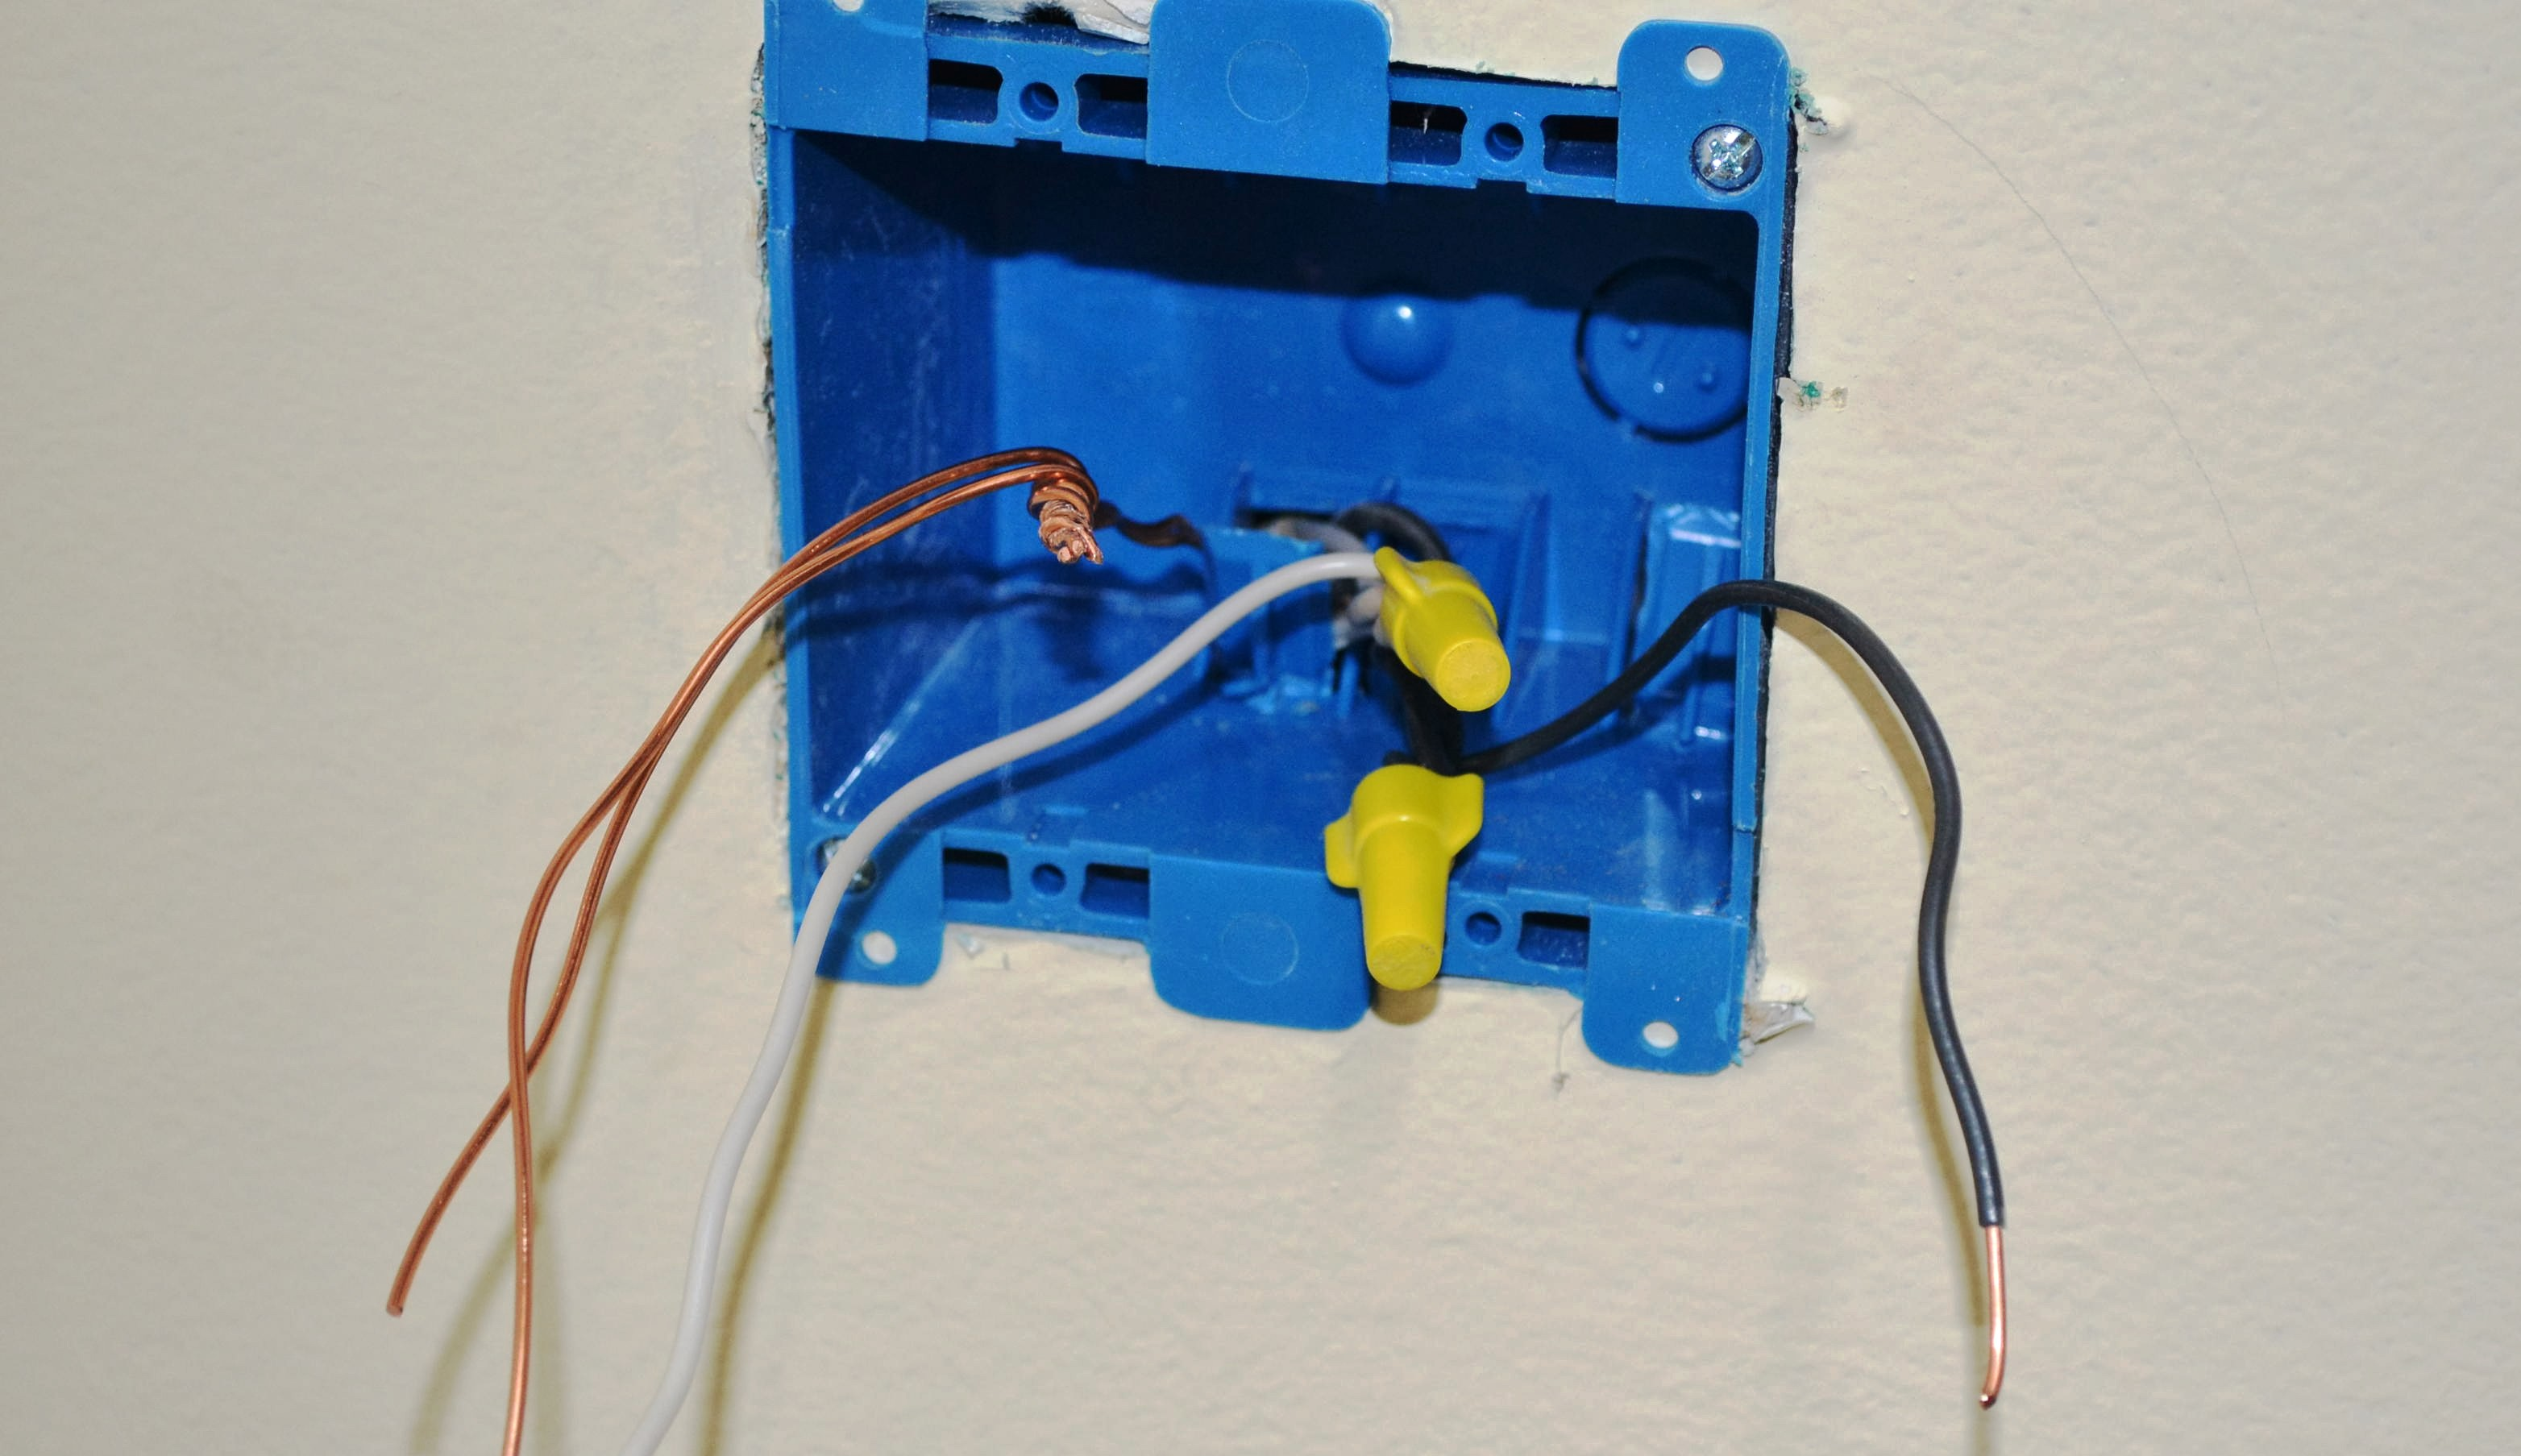 Converting A 2 Socket Outlet To 4 Sockets